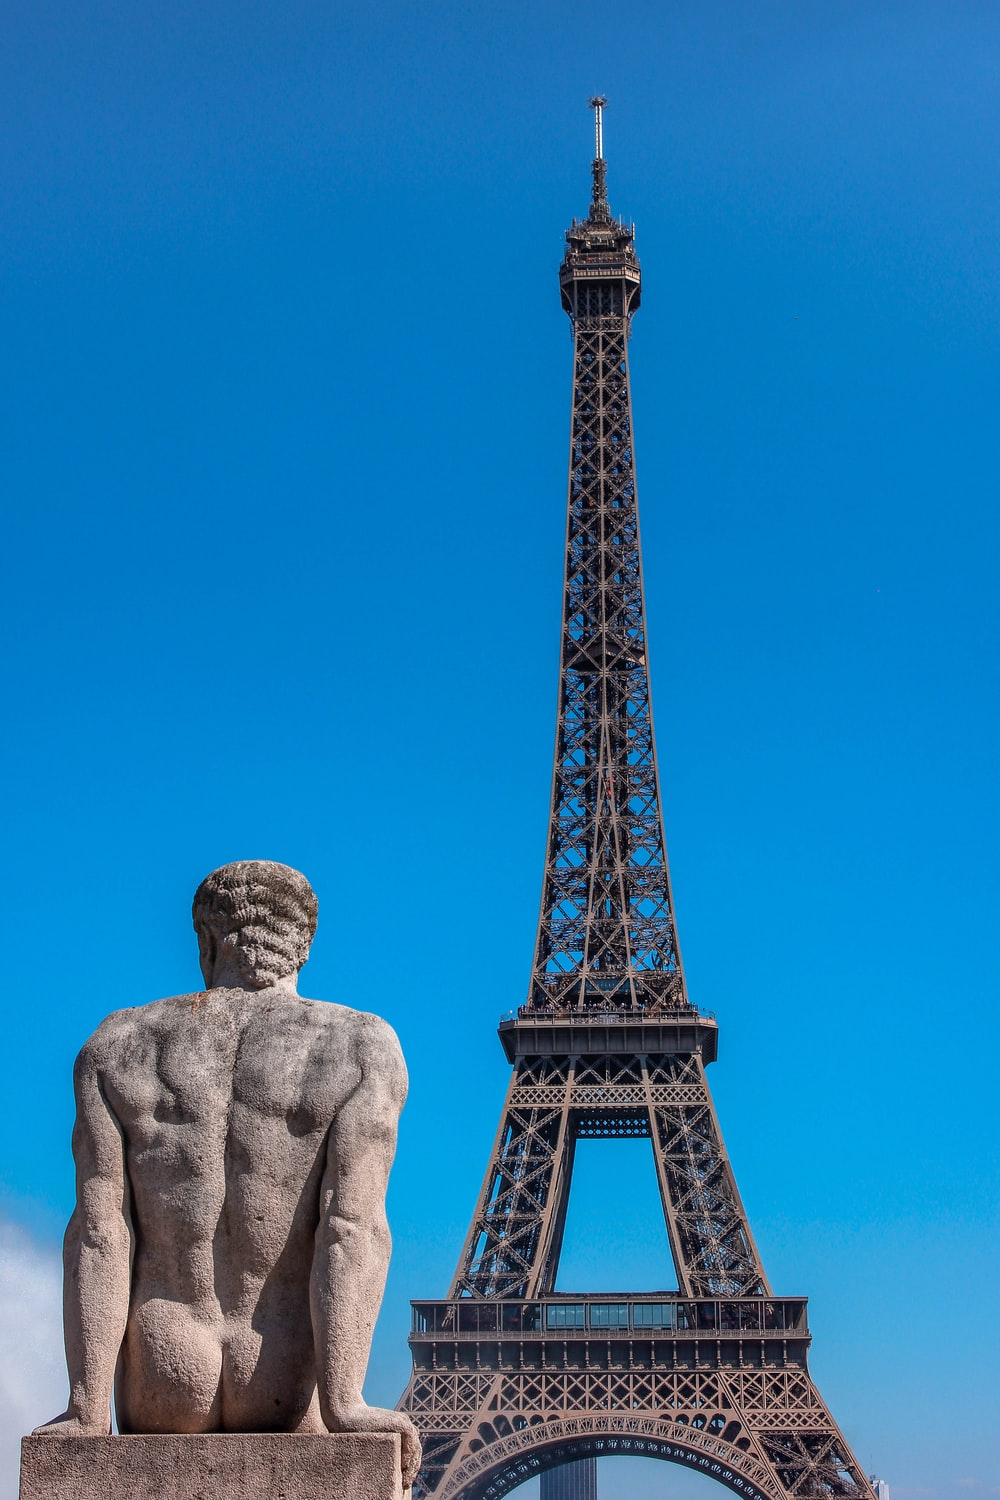 man's sculpture and Eiffel Tower